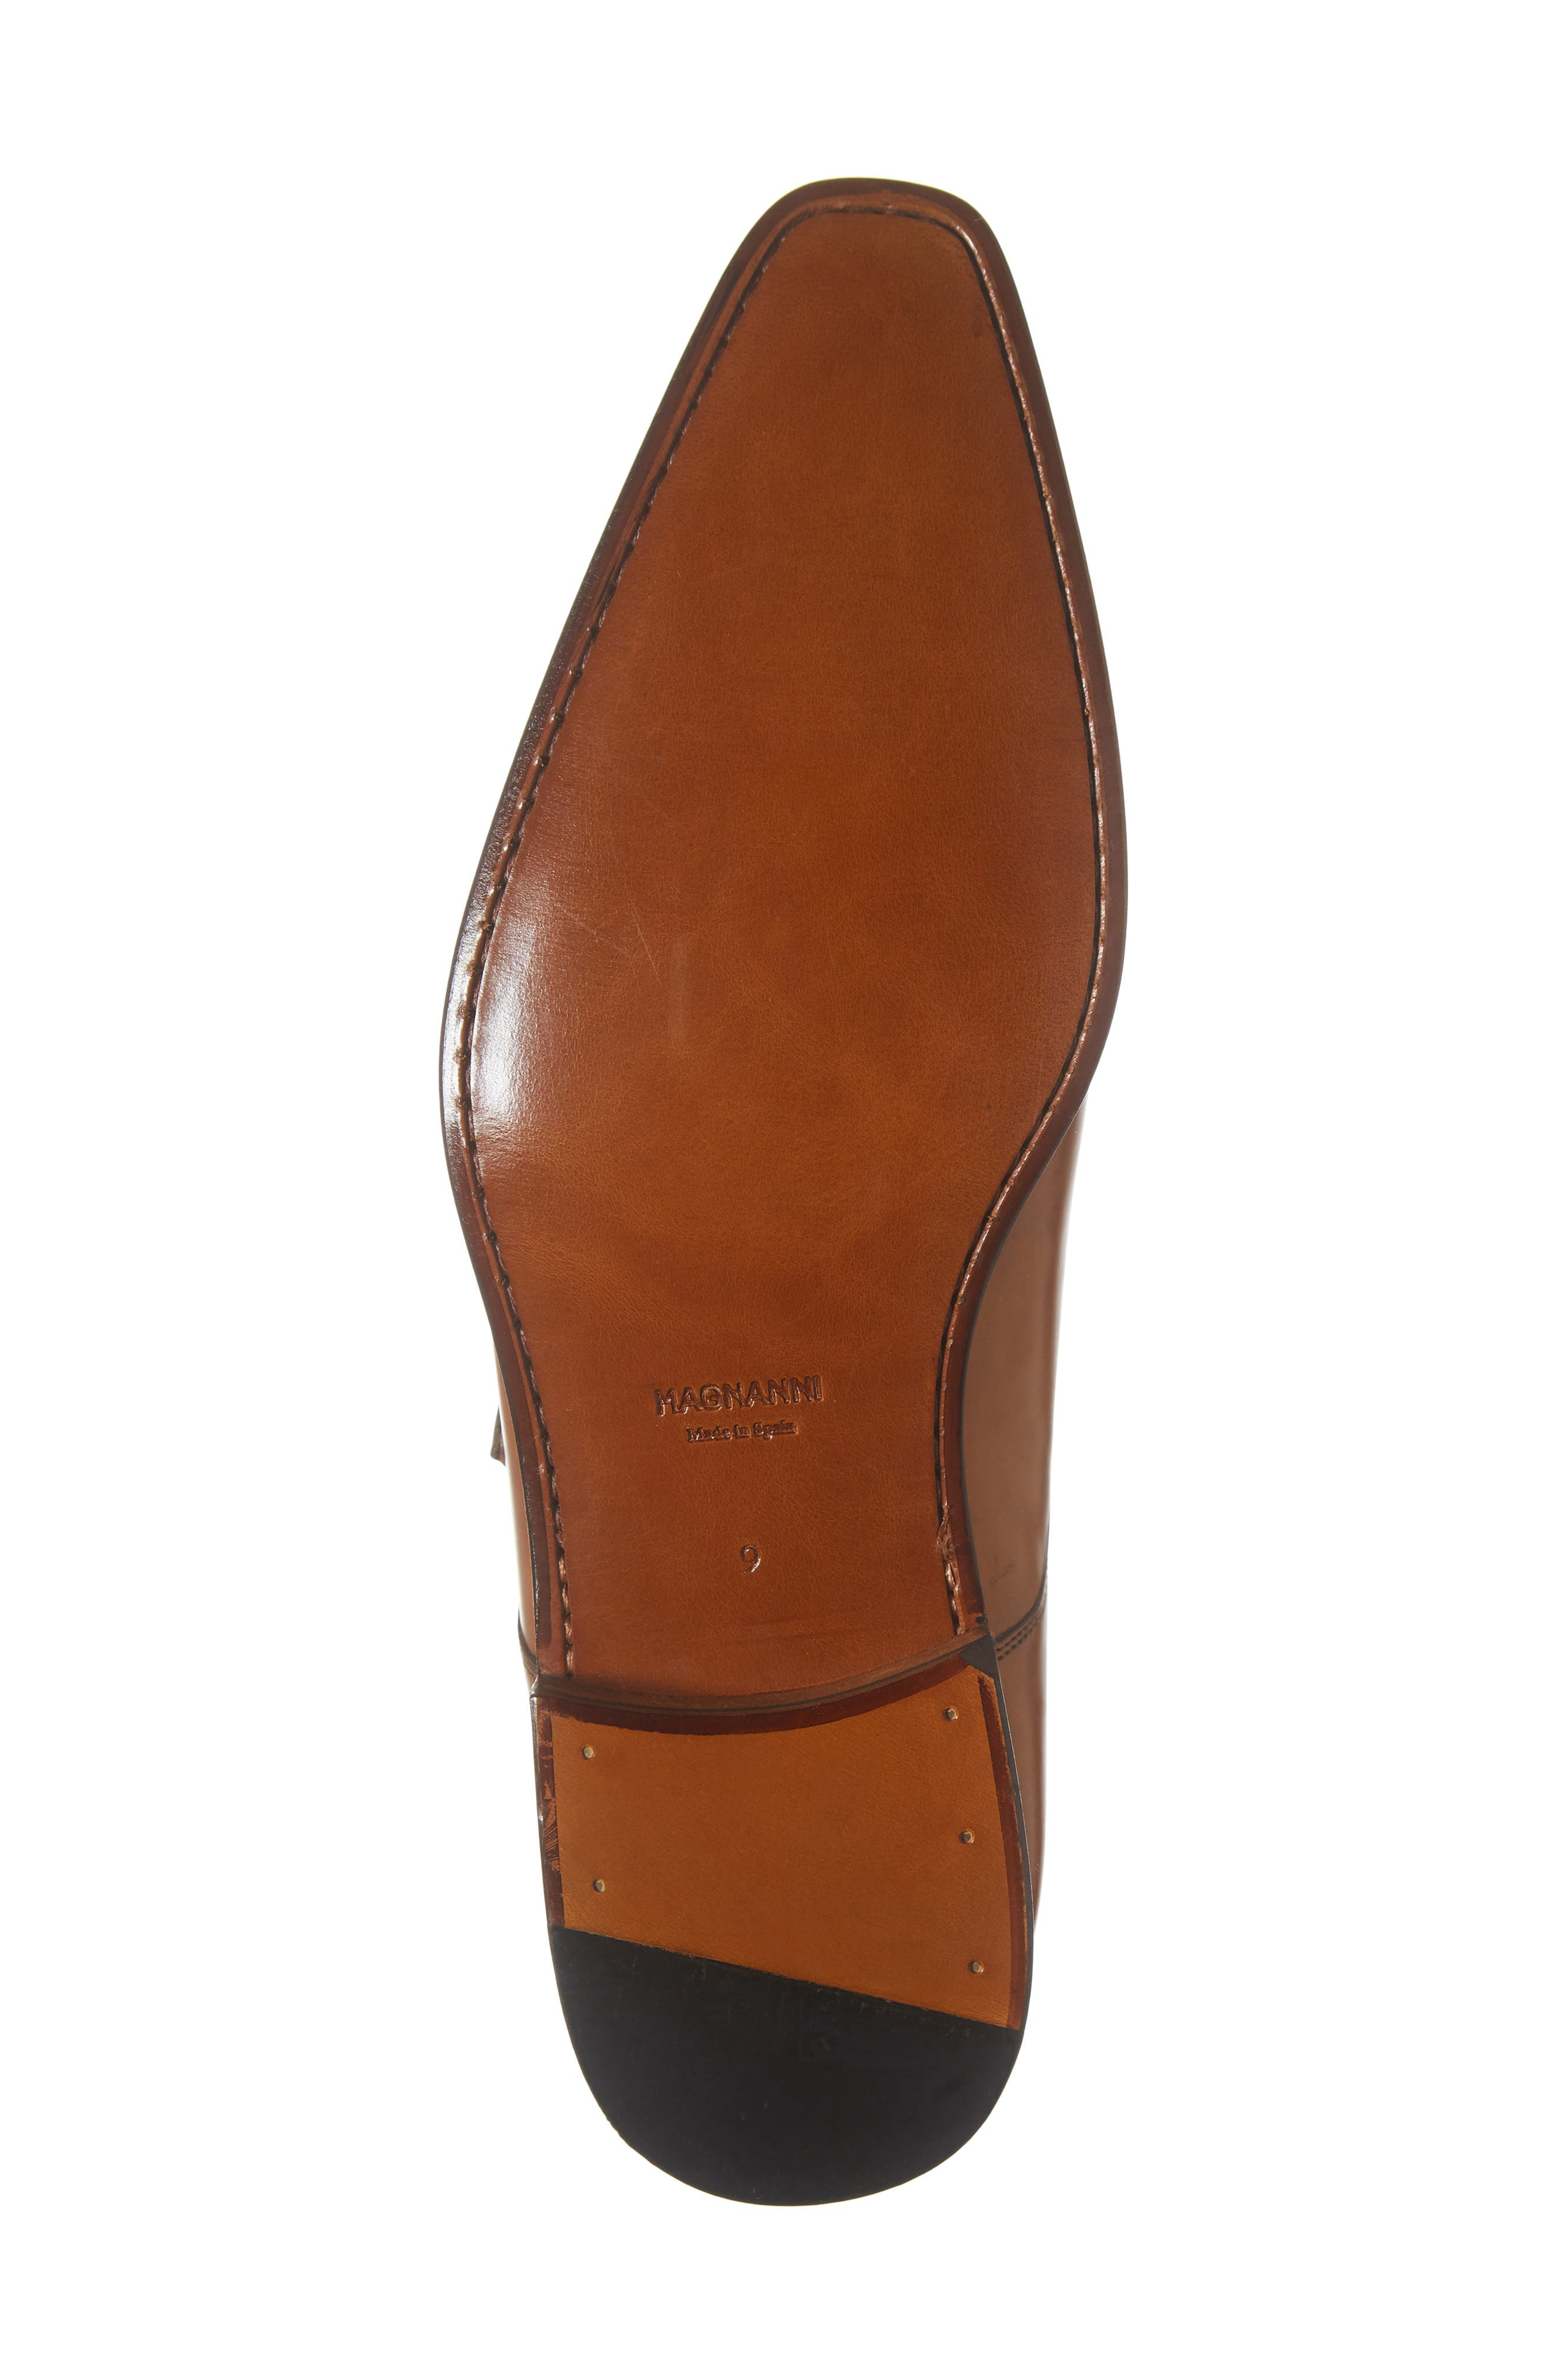 Geruasi Monk Strap Shoe,                             Alternate thumbnail 6, color,                             230